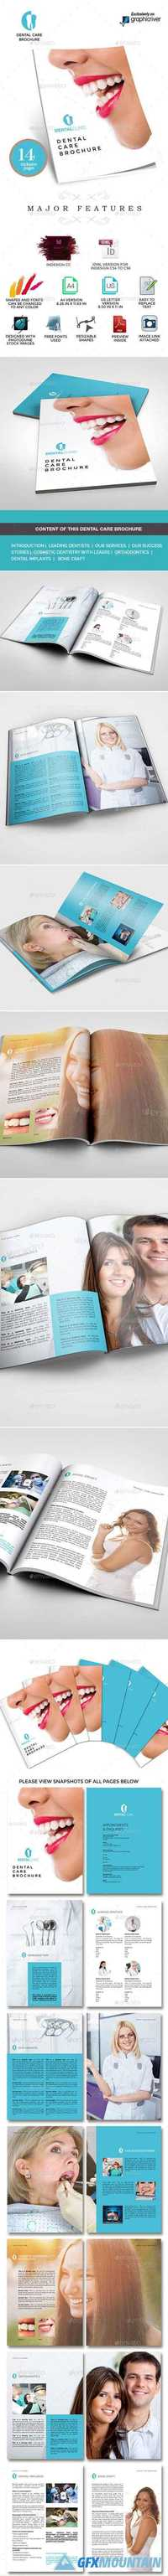 Dental Clinic Services or Care Brochure 9529058